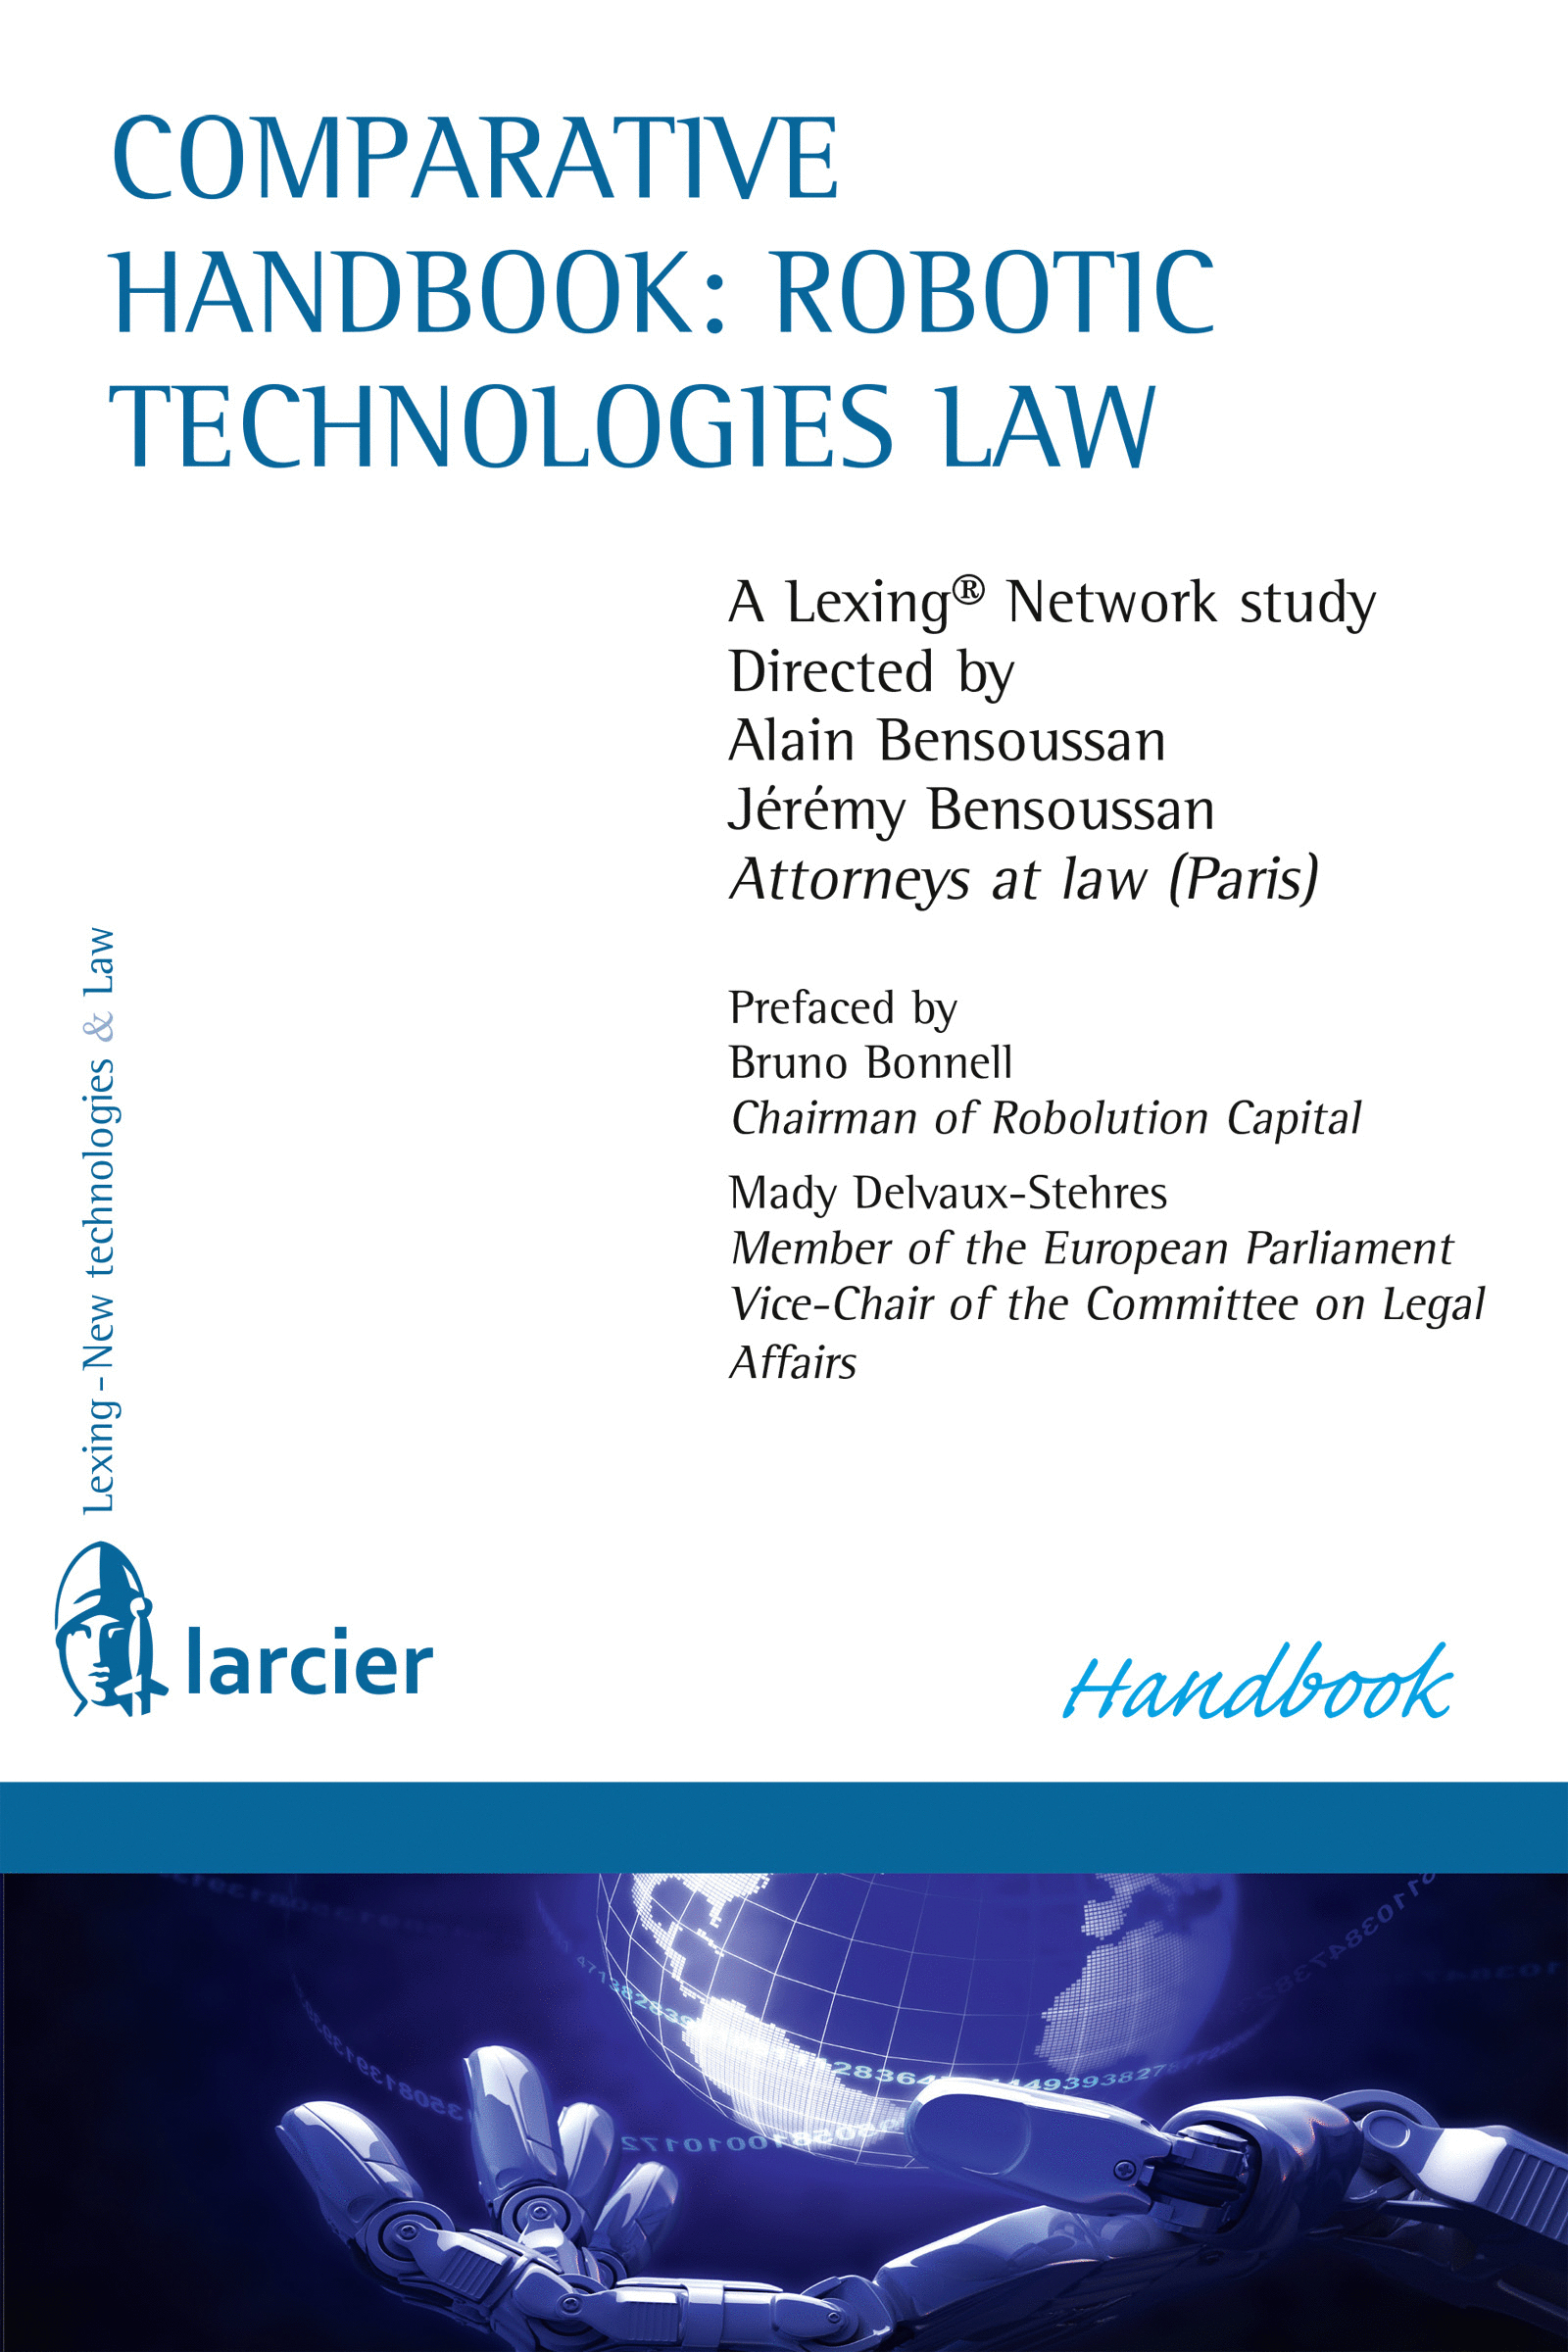 Robot Law Book - a Comparative Handbook - Michalsons